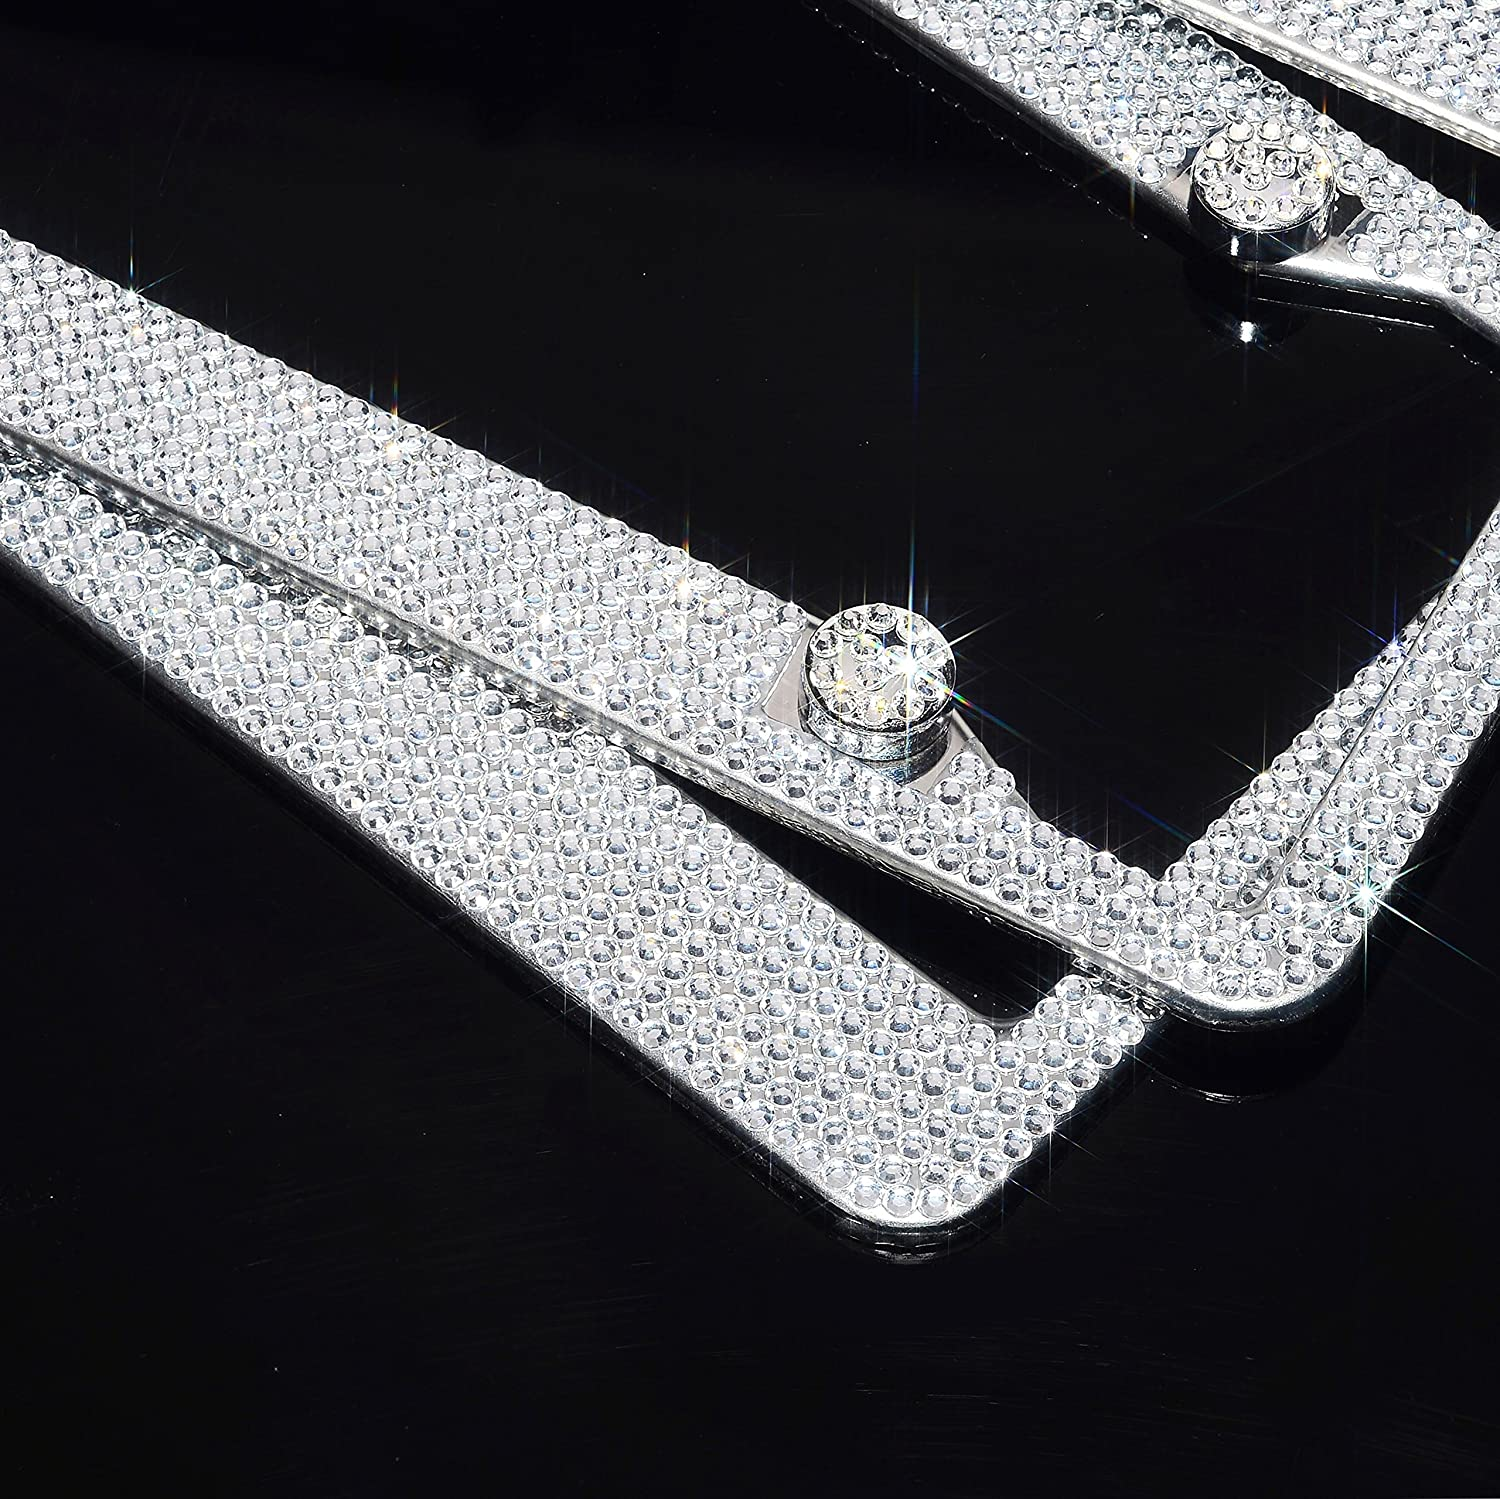 H C Hippo Creation 2 Pack Handcrafted Crystal Premium Stainless Steel Bling License Plate Frame (Crystal)